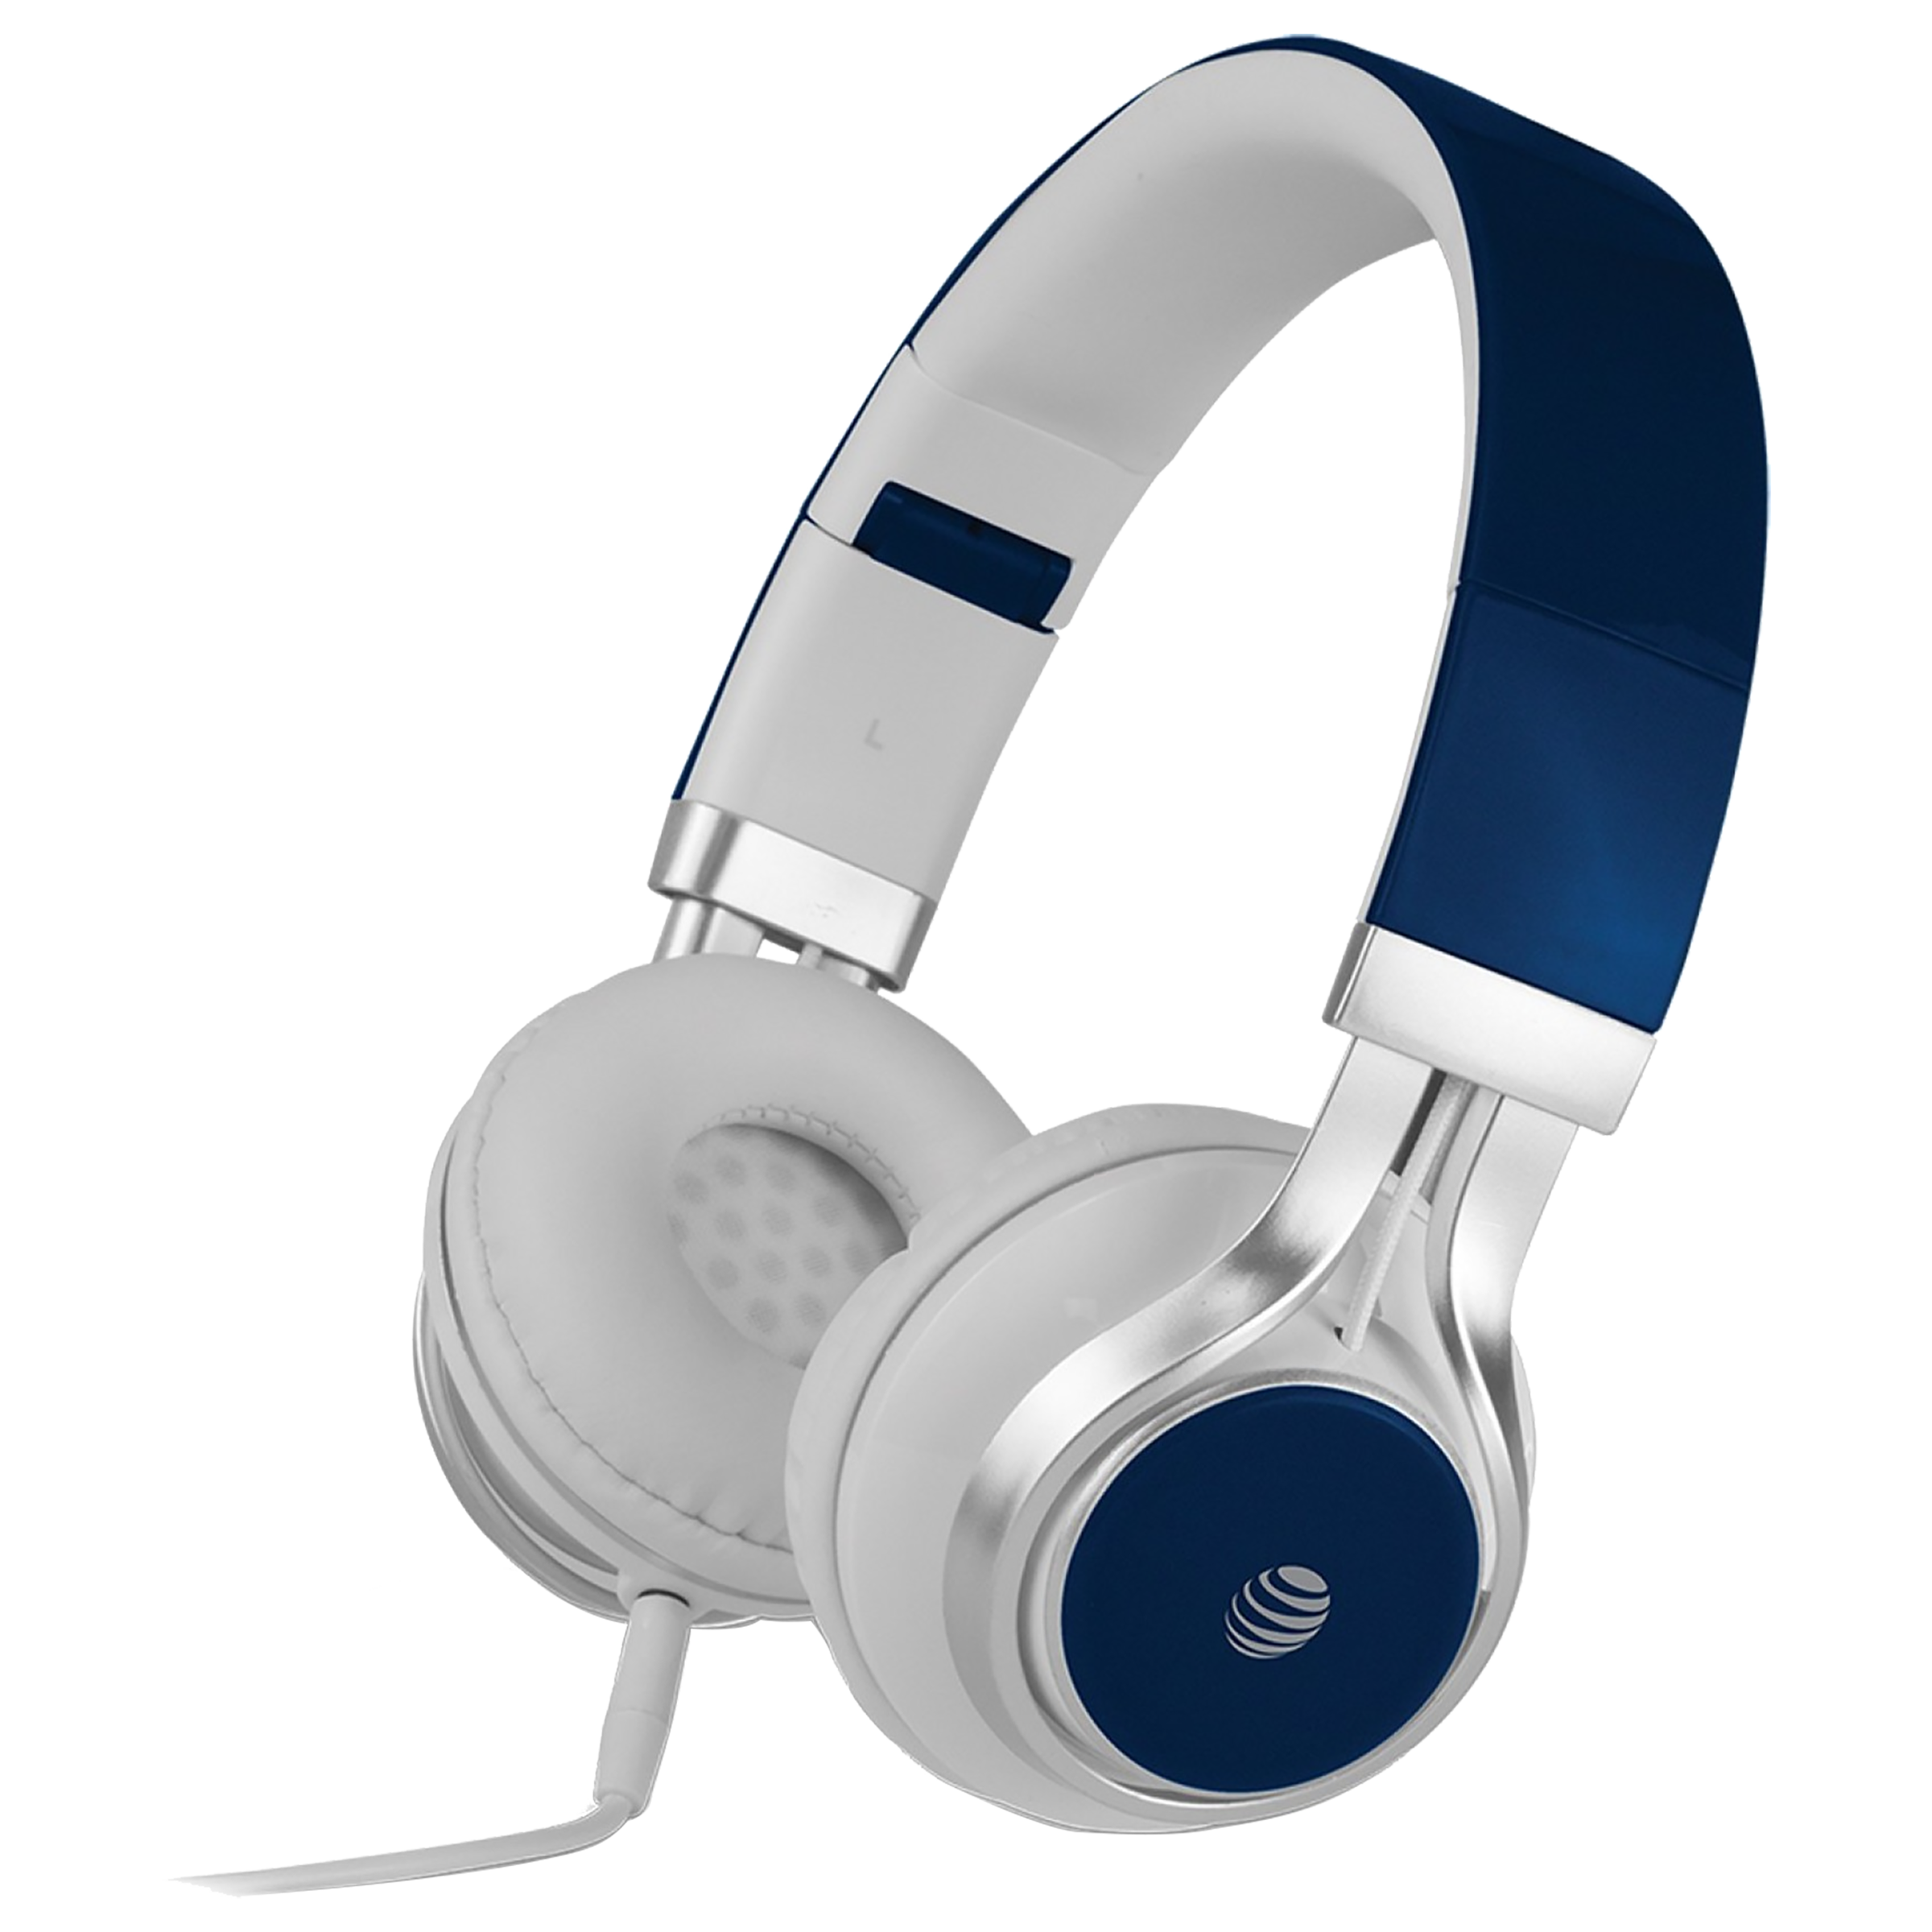 AT&T Over-Ear Noise Isolation Wired Headphone with Mic (Gold Plated 3.5 mm Jack, HPM10-BLU, Blue)_1